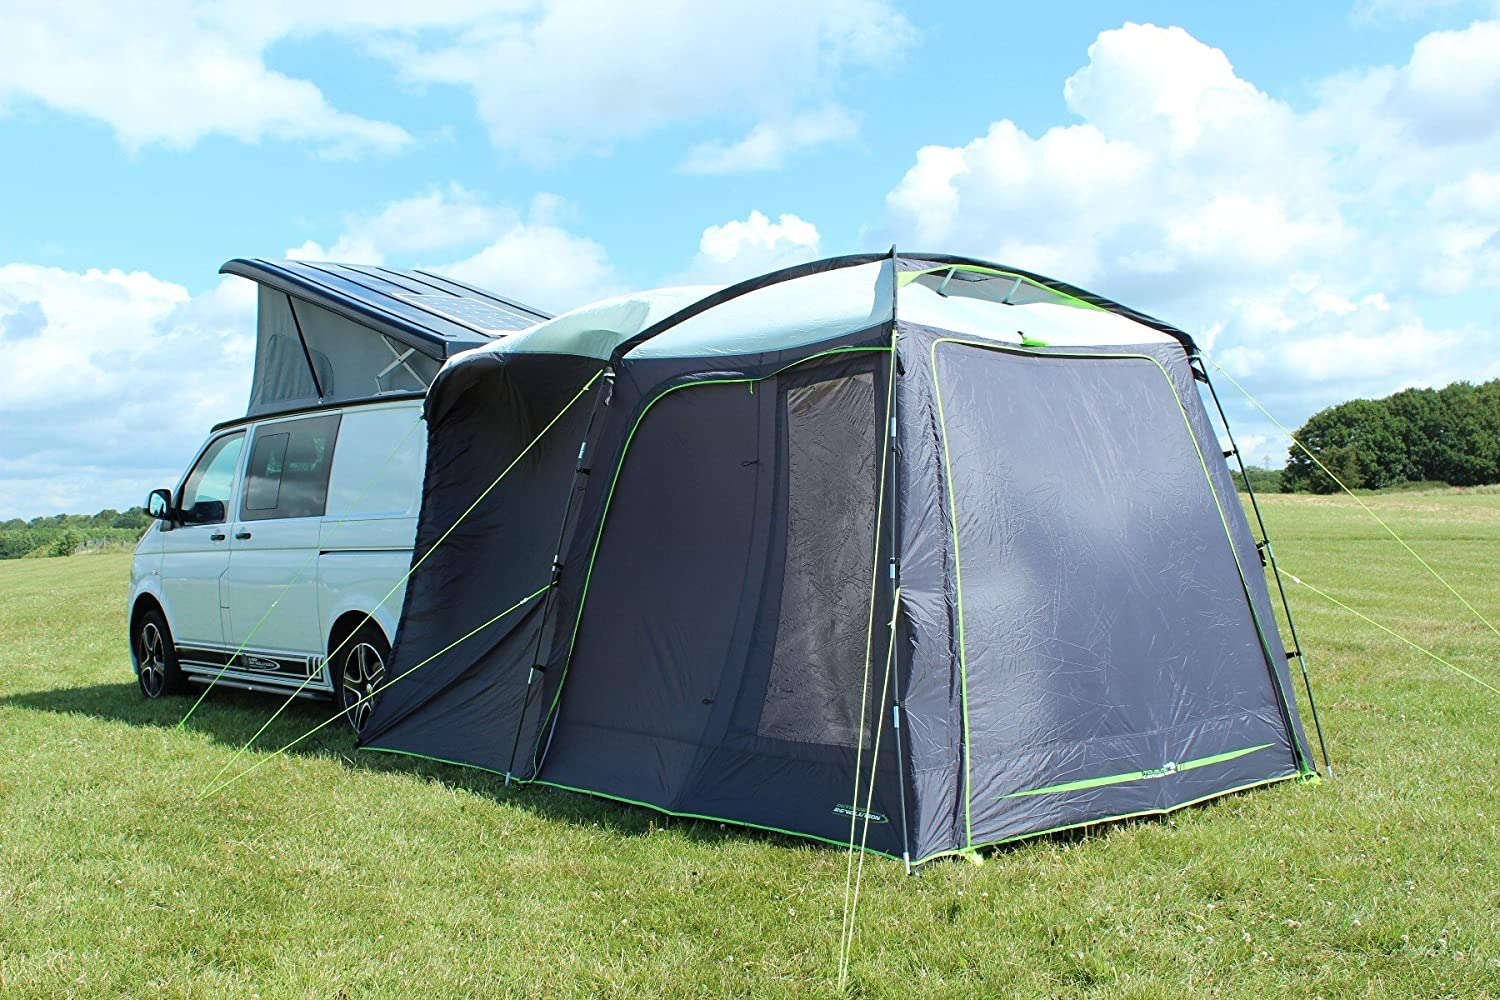 Outdoor Revolution Momentum Cayman Tailgate Driveaway Awning by Outdoor Revolution Amazon.co.uk Sports u0026 Outdoors & Outdoor Revolution Momentum Cayman Tailgate Driveaway Awning by ...